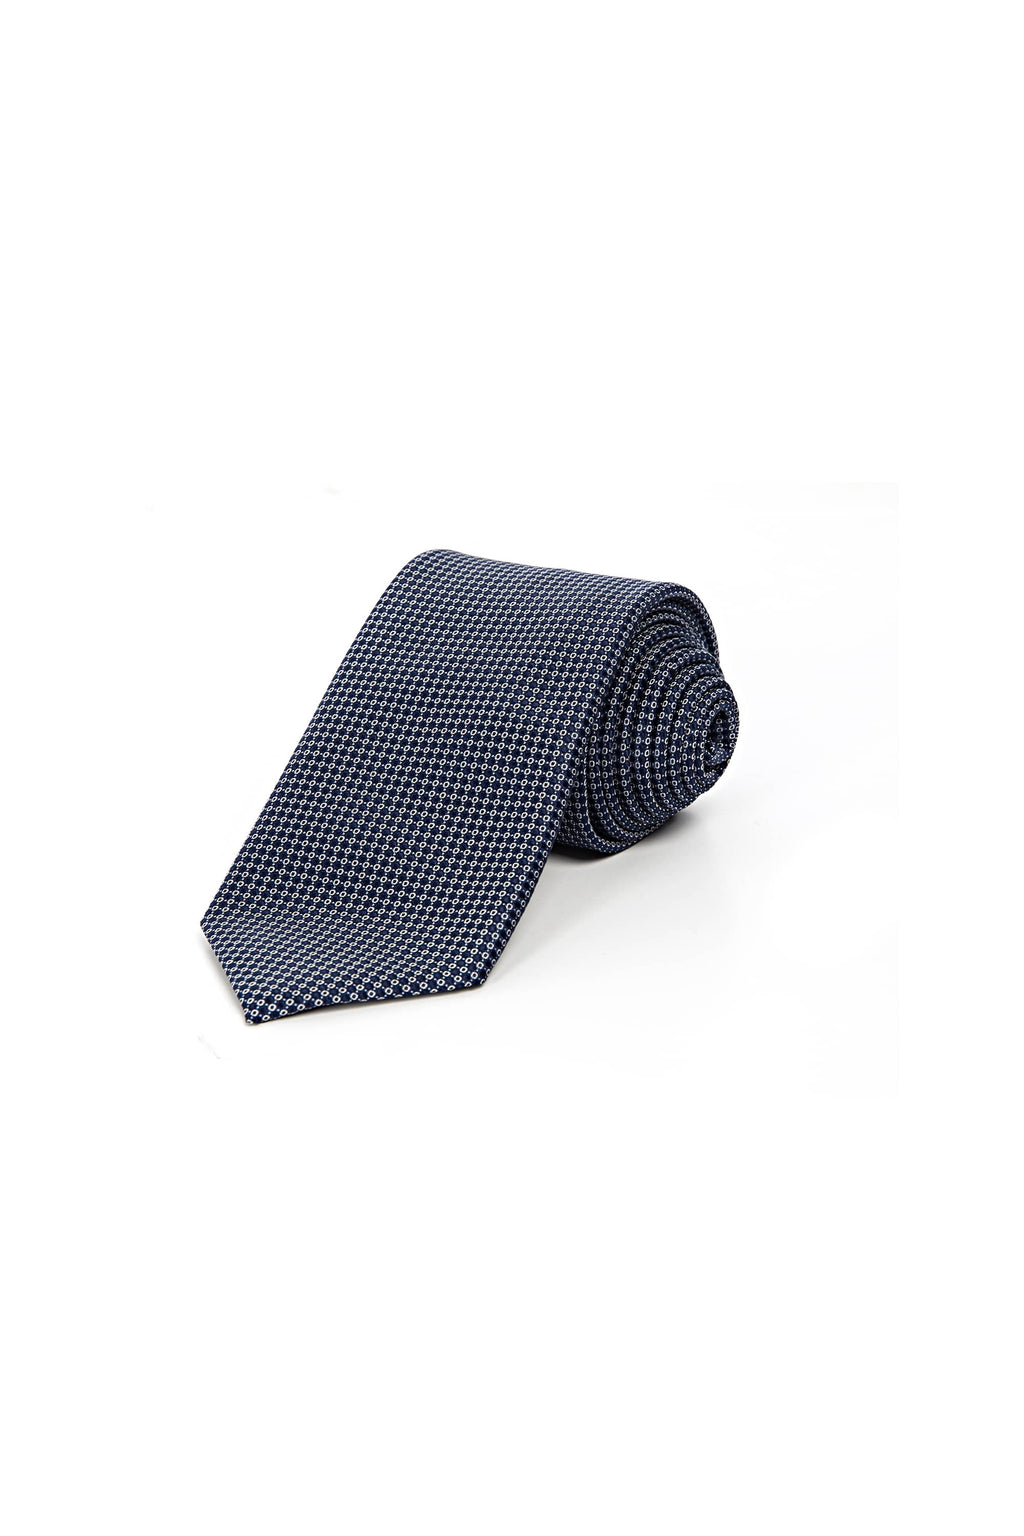 Romano Botta Navy-White Dotted Tie